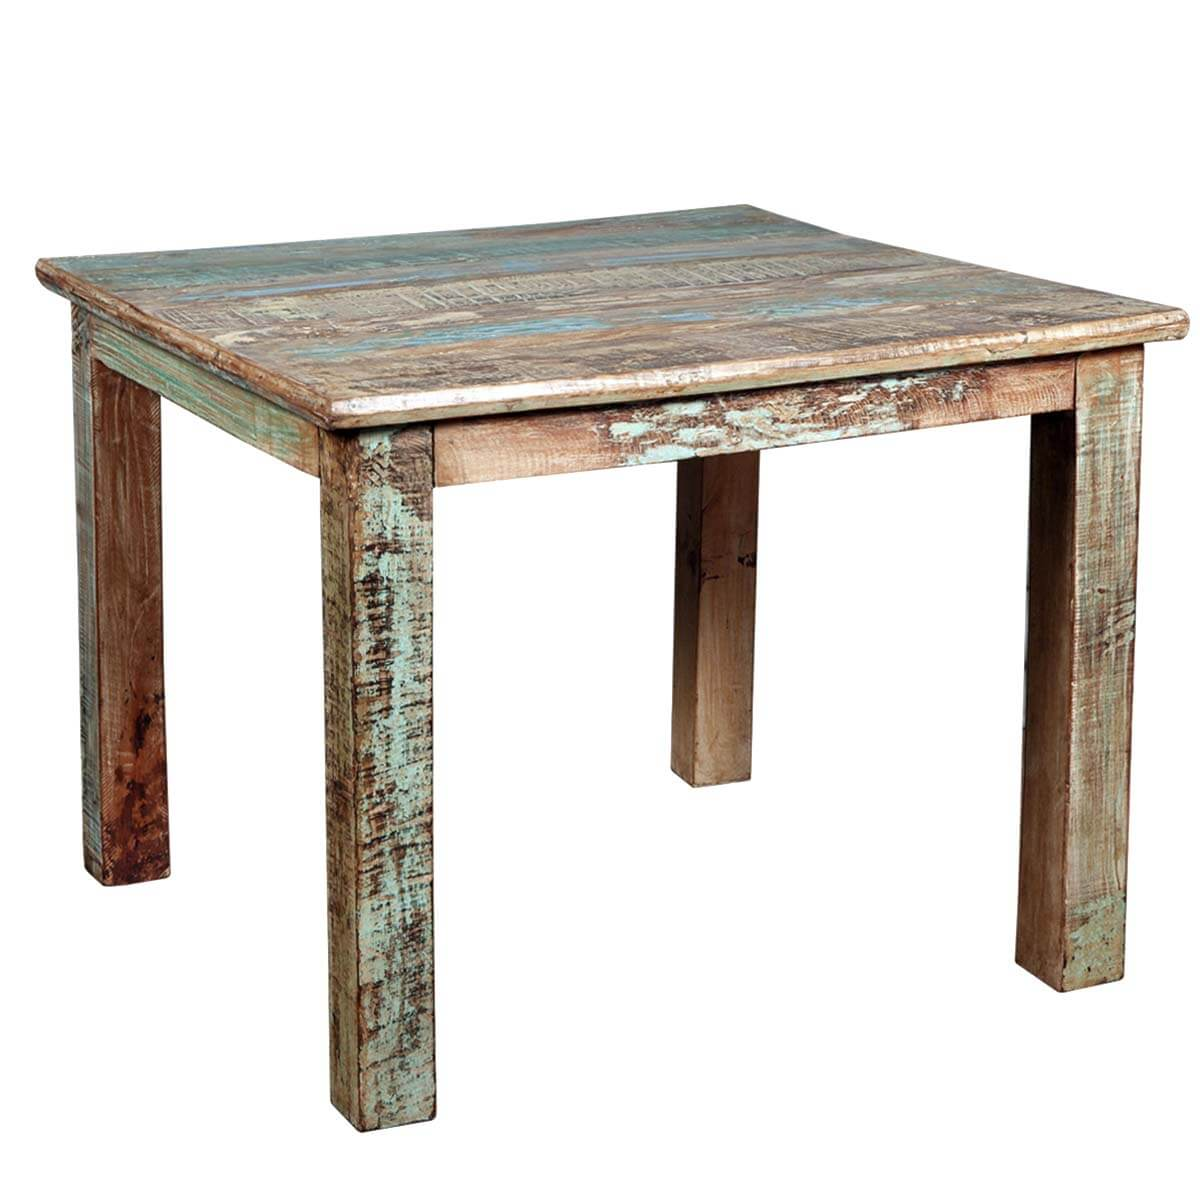 Rustic Reclaimed Wood Distressed Small Kitchen Dining Table : 4436 from sierralivingconcepts.com size 1200 x 1200 jpeg 120kB